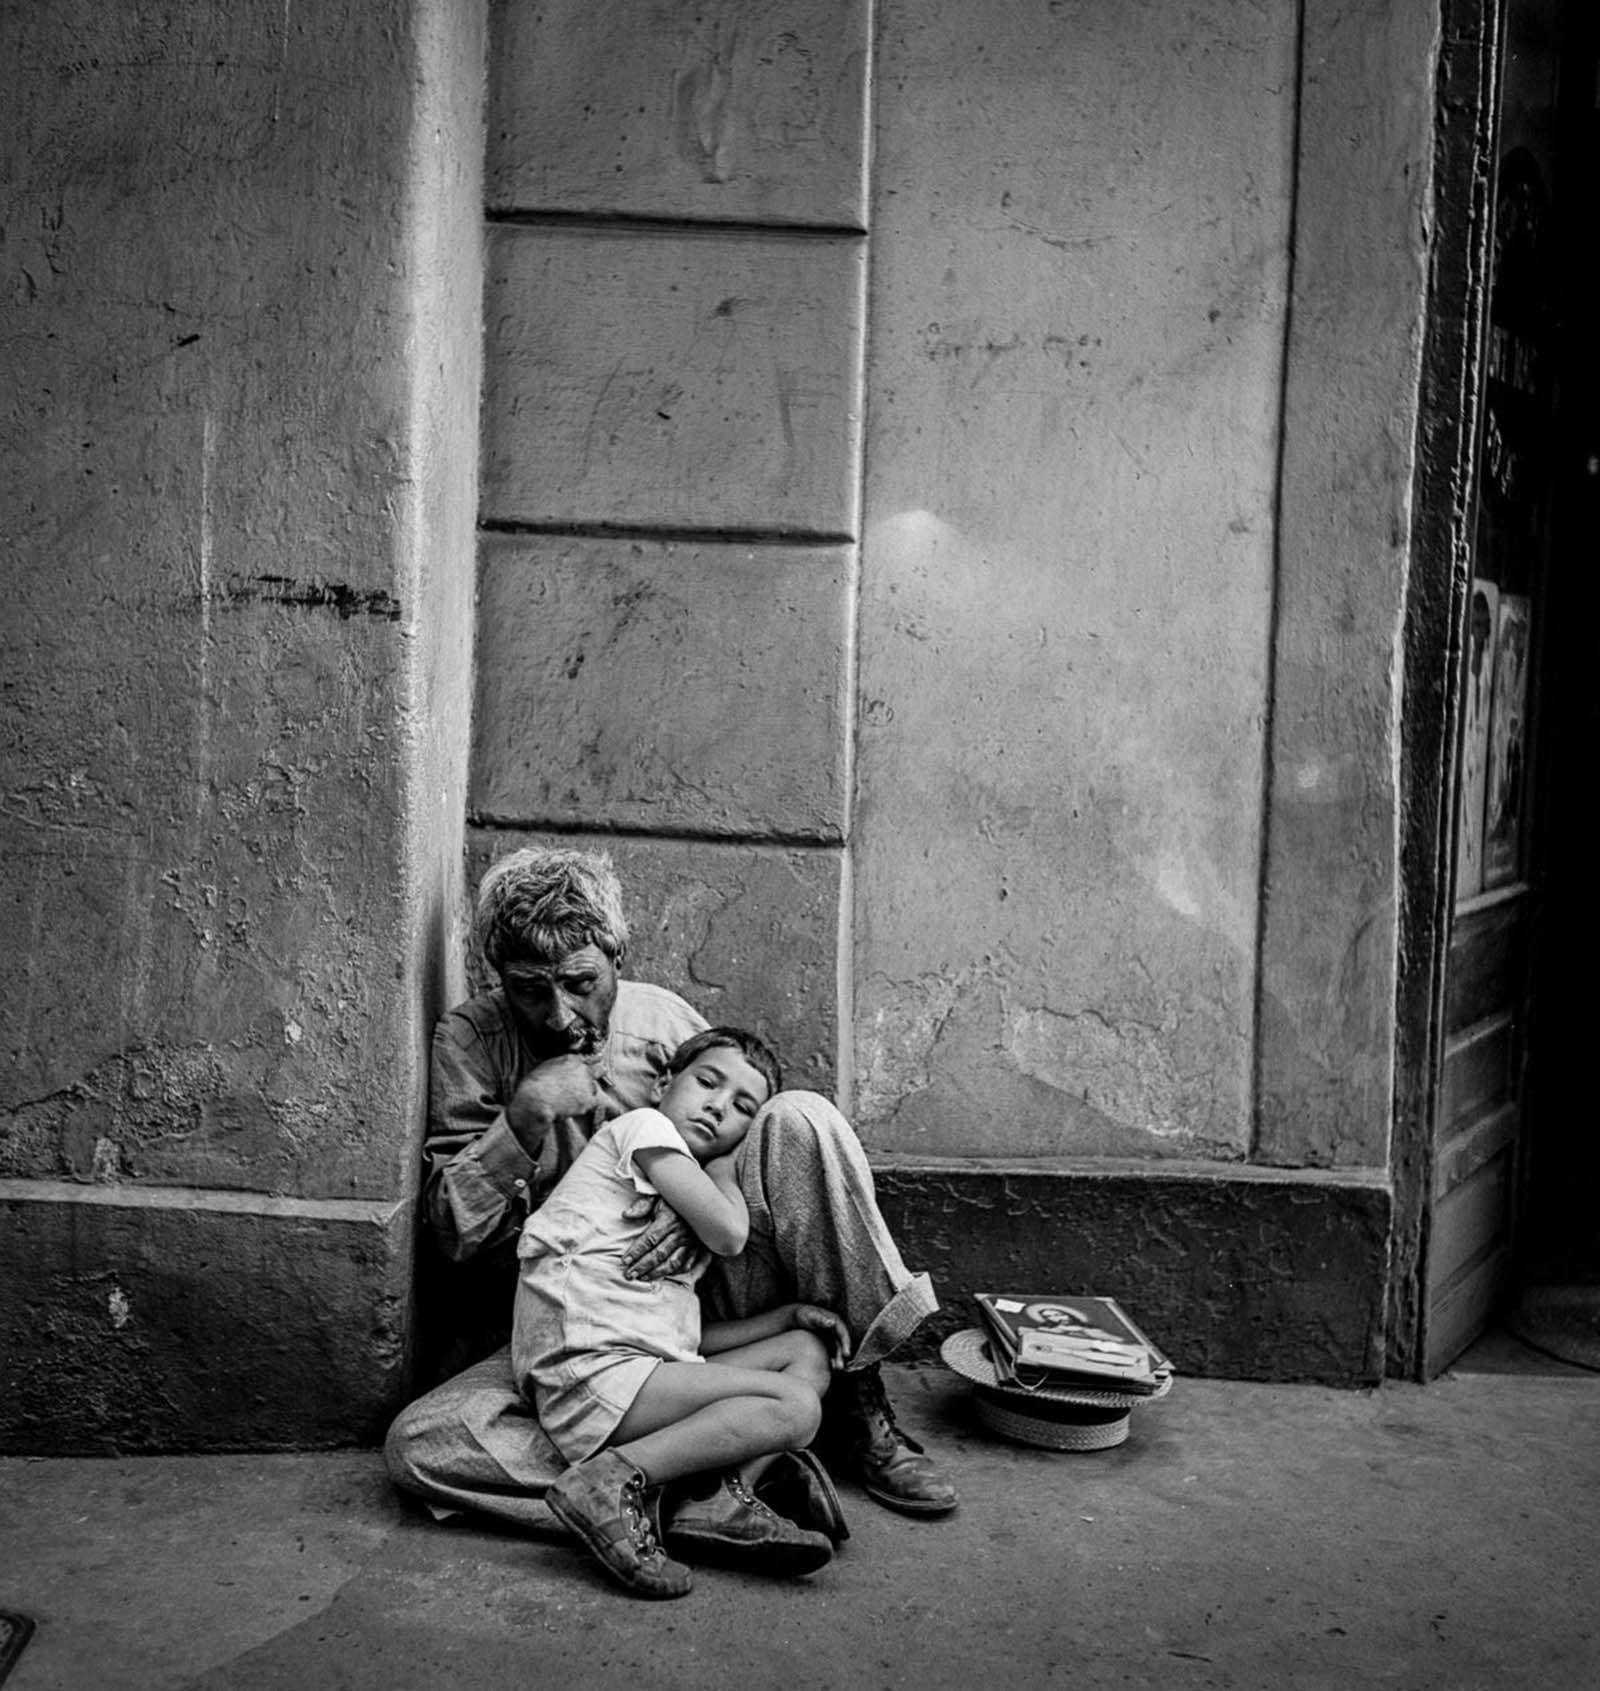 A beggar and child in San Juan.